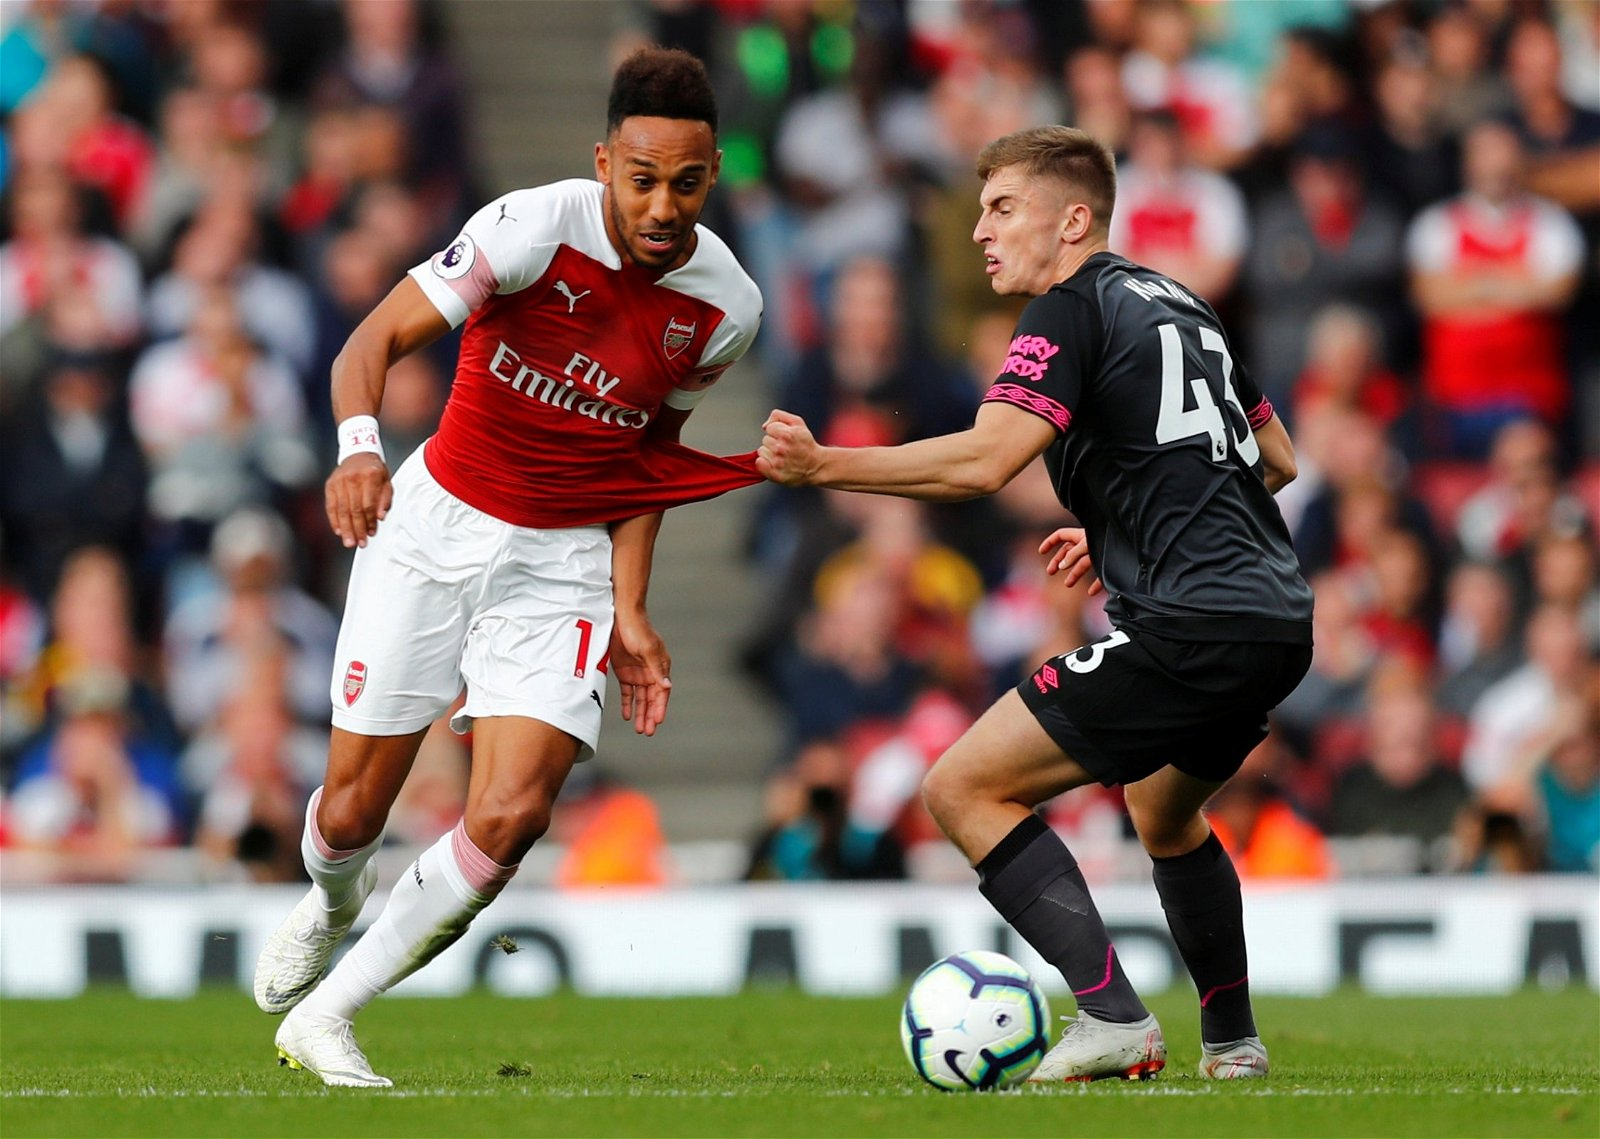 Jonjoe Kenny pulls at Pierre-Emerick Aubameyang's shirt during Arsenal v Everton